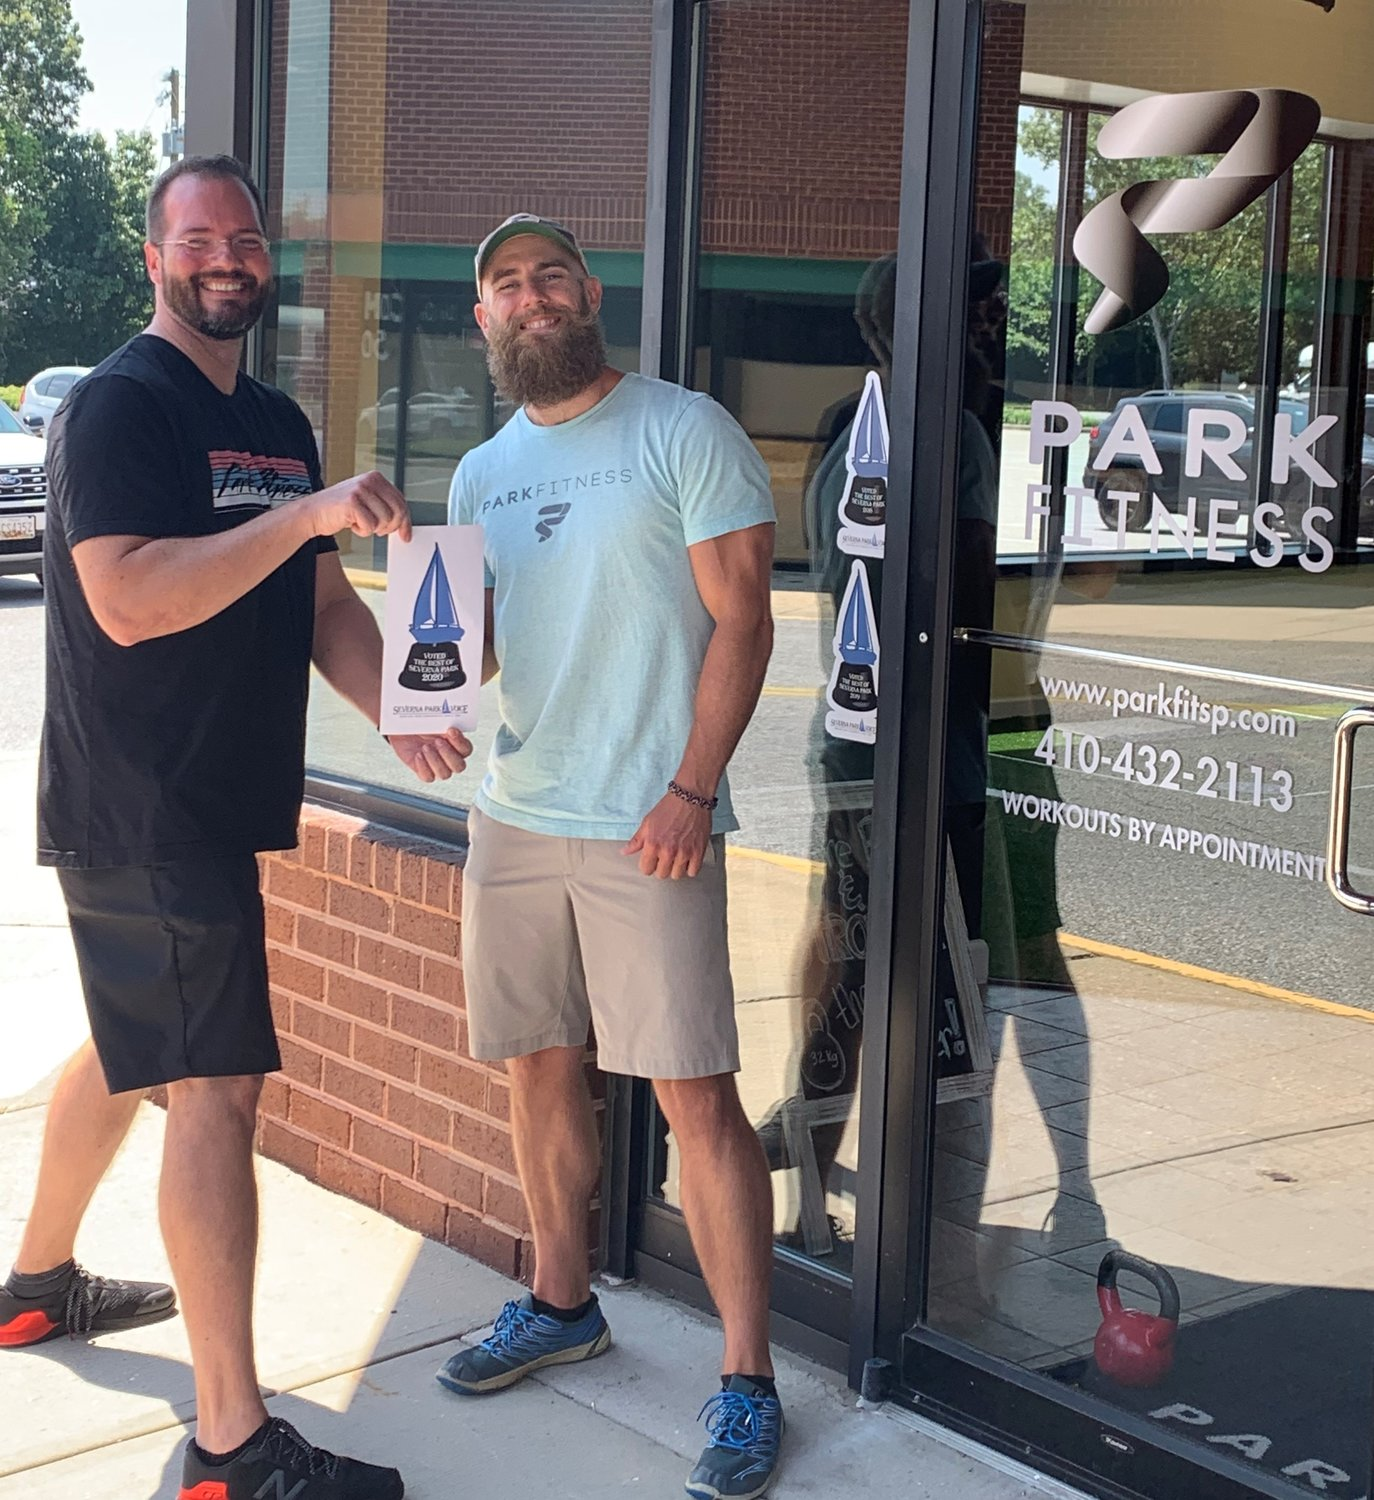 On behalf of Park Fitness, Joe Bocek (left) and Danny O'Malley accepted the Best Of award for Best Fitness Club, Best Weight Loss Program, and Best Overall Customer Service.